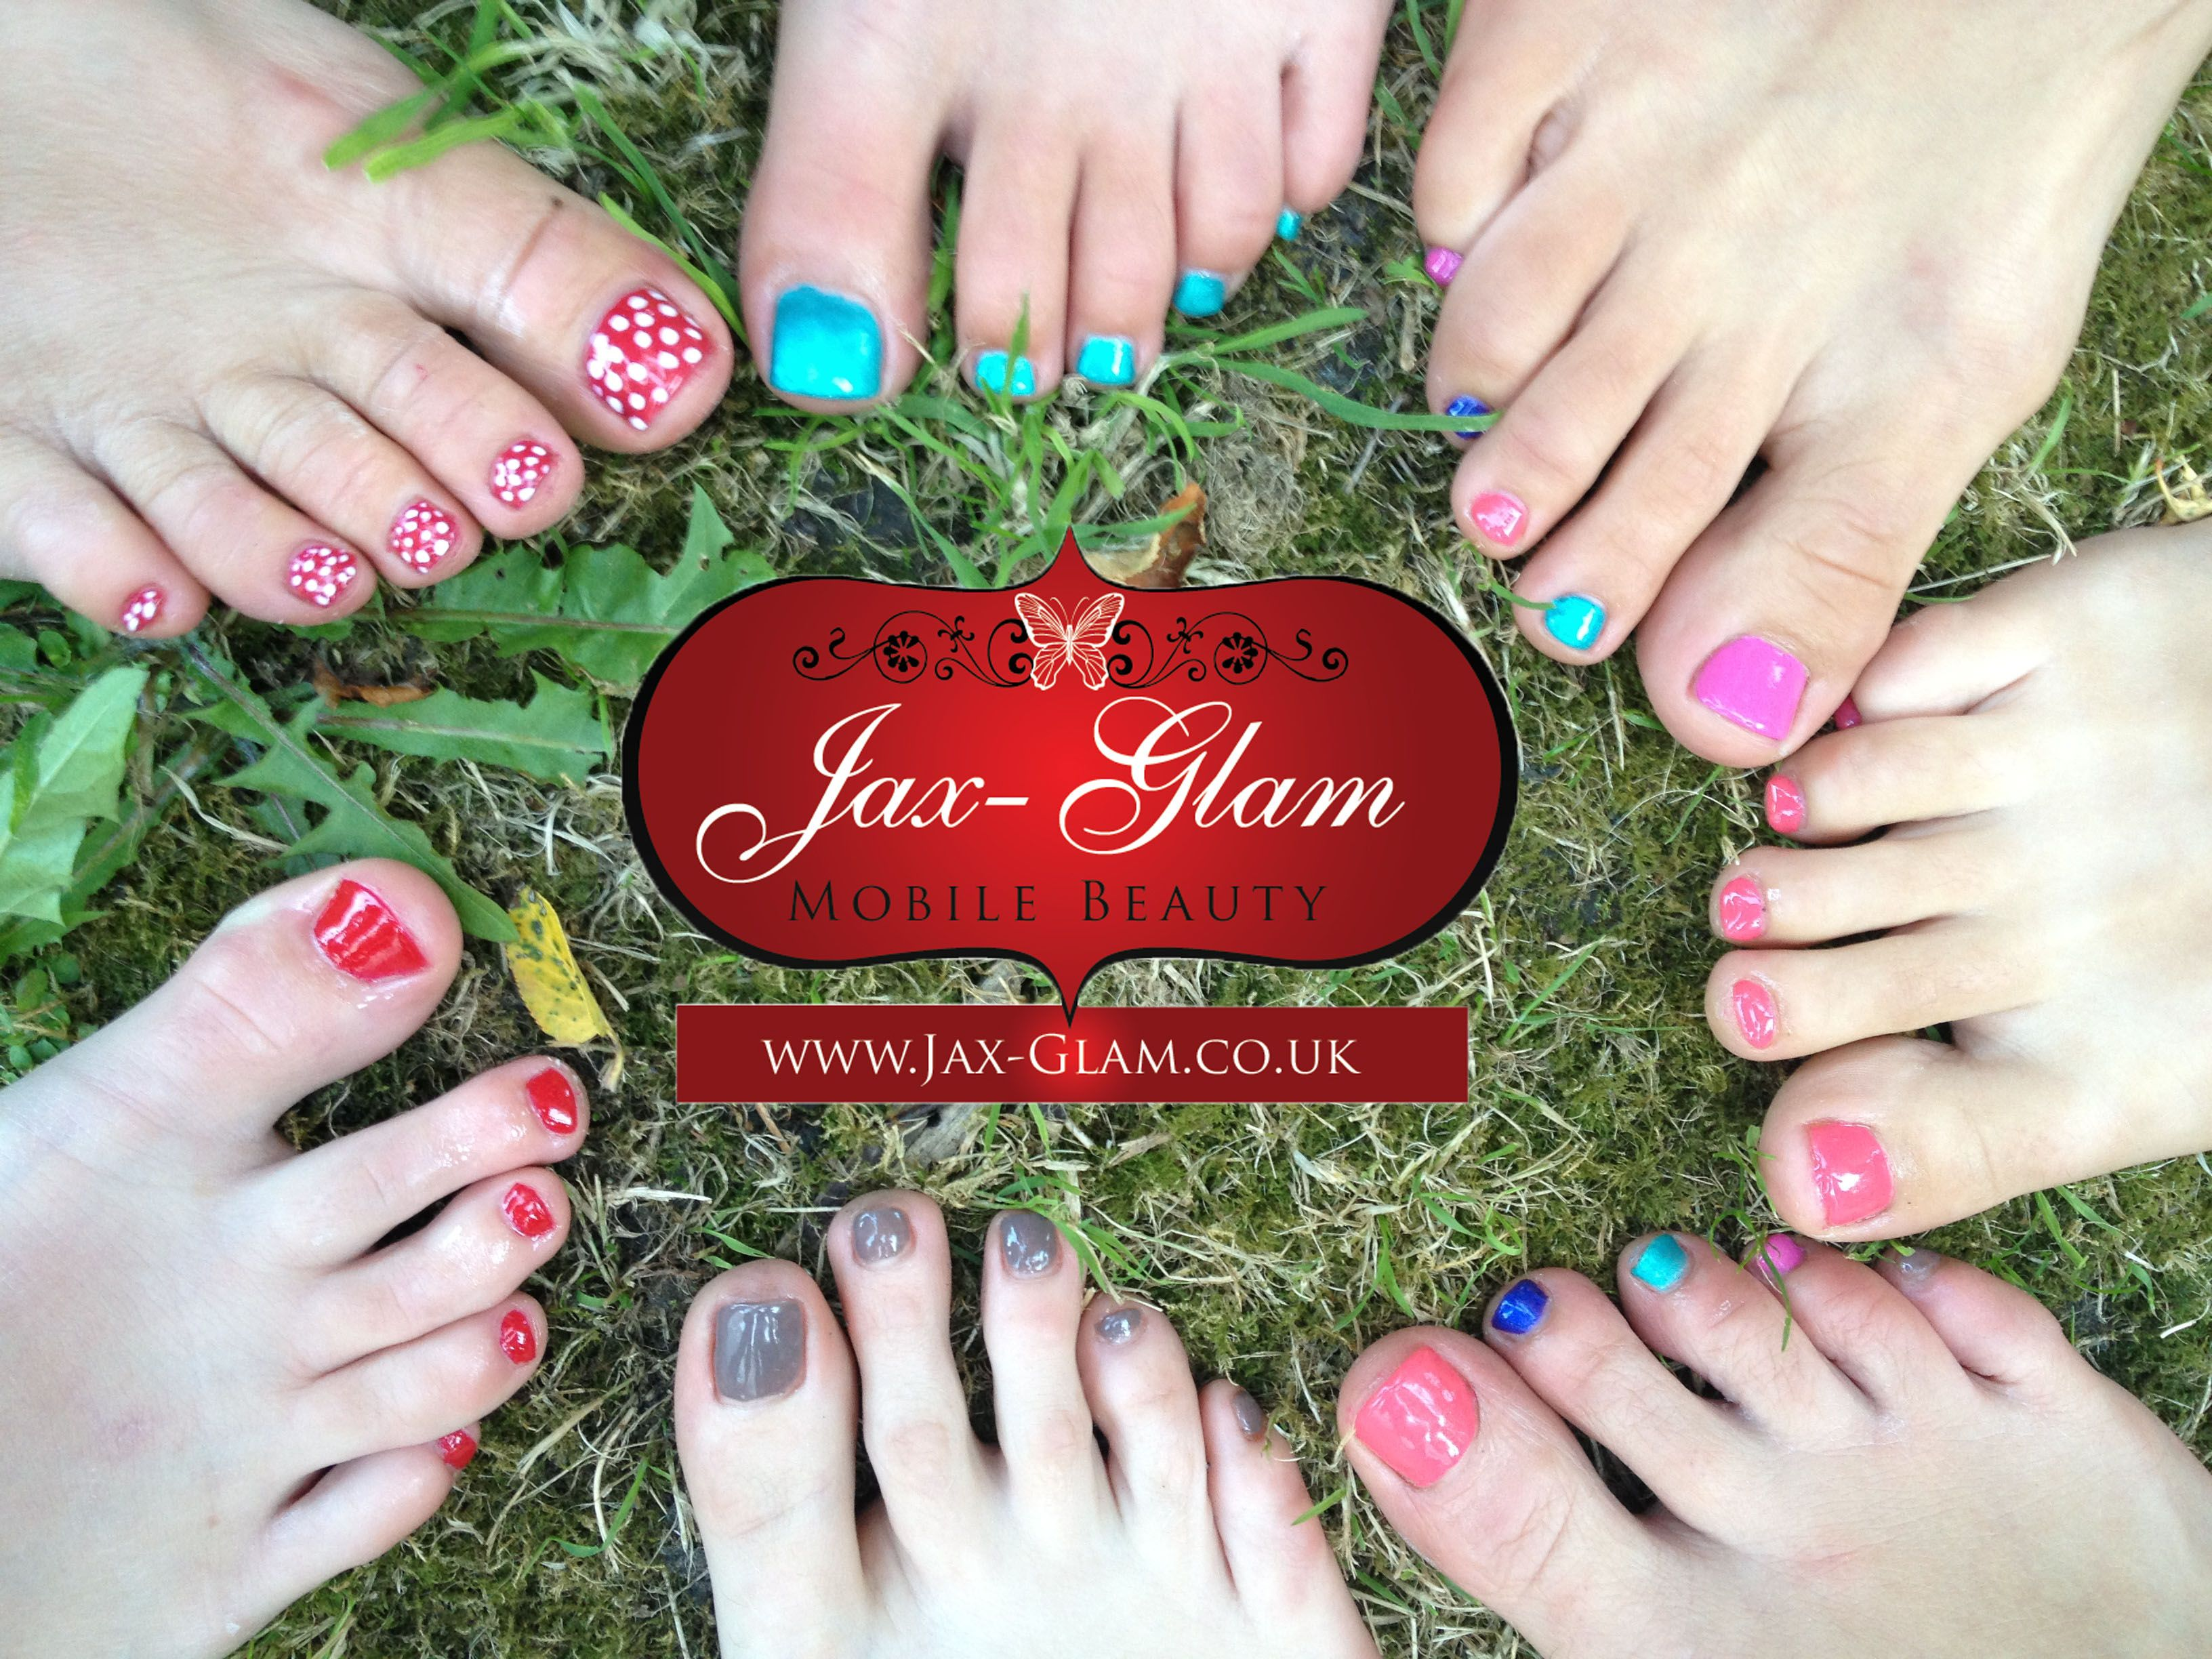 CND Shellac Summer Toes Nail Pedicure Pamper Party by